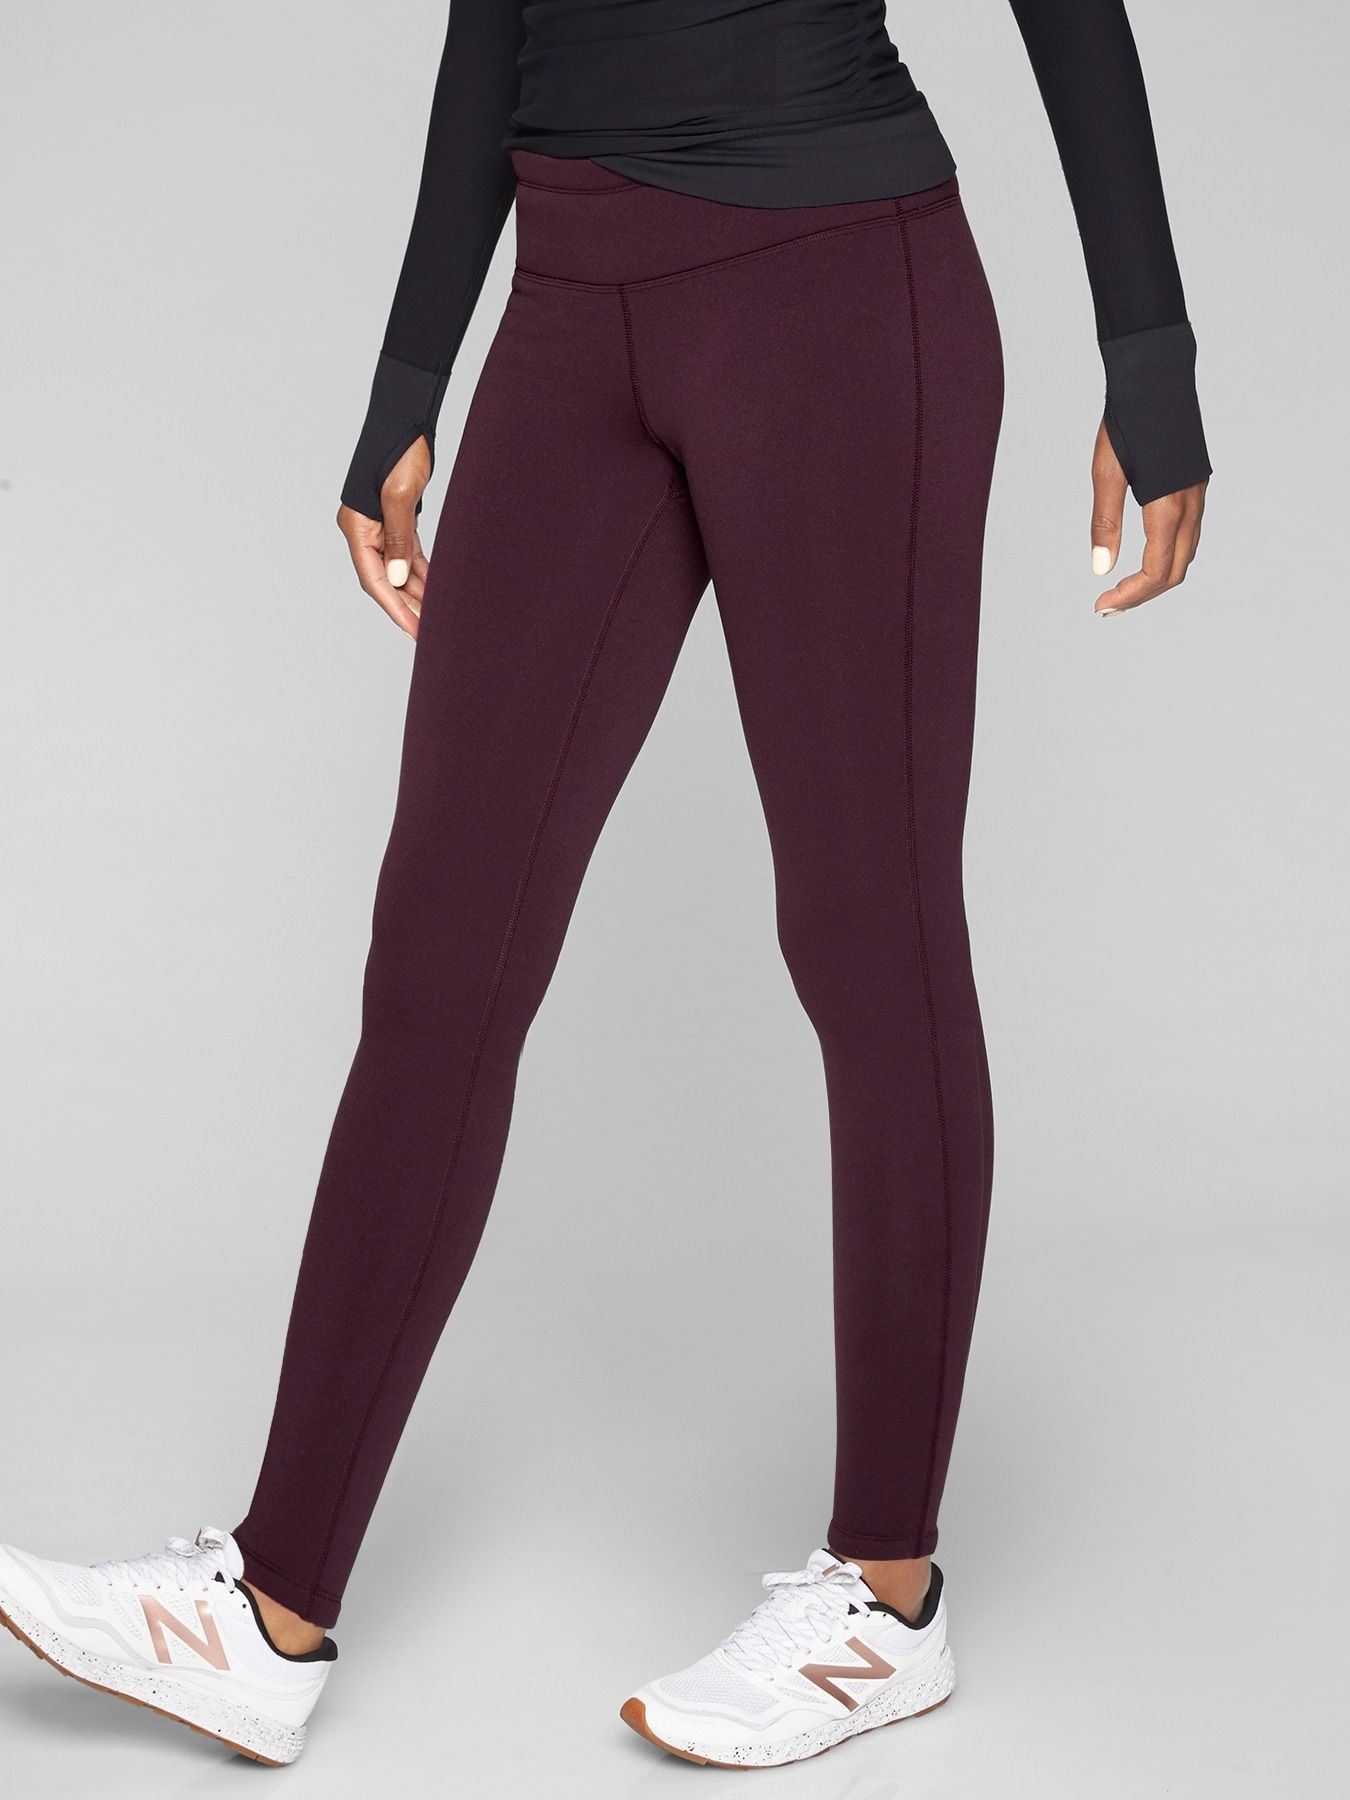 5157cf01bda19 Polartec® Power Stretch® Tight | Fit | Tight leggings, Maroon ...